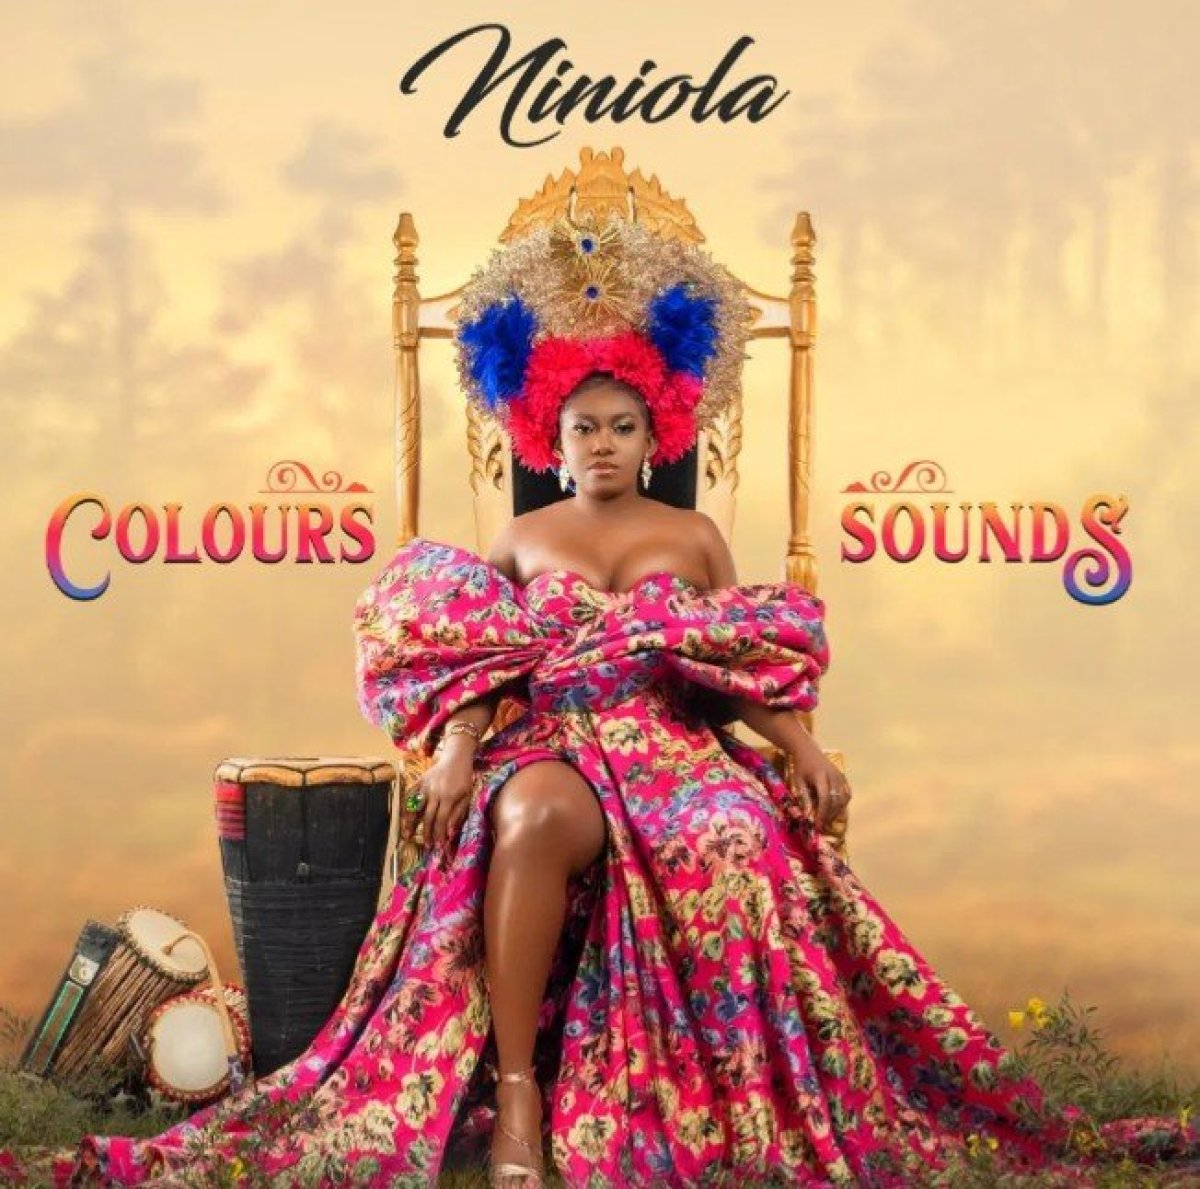 Niniola – Colours and Sounds (ALBUM DOWNLOAD FREE)